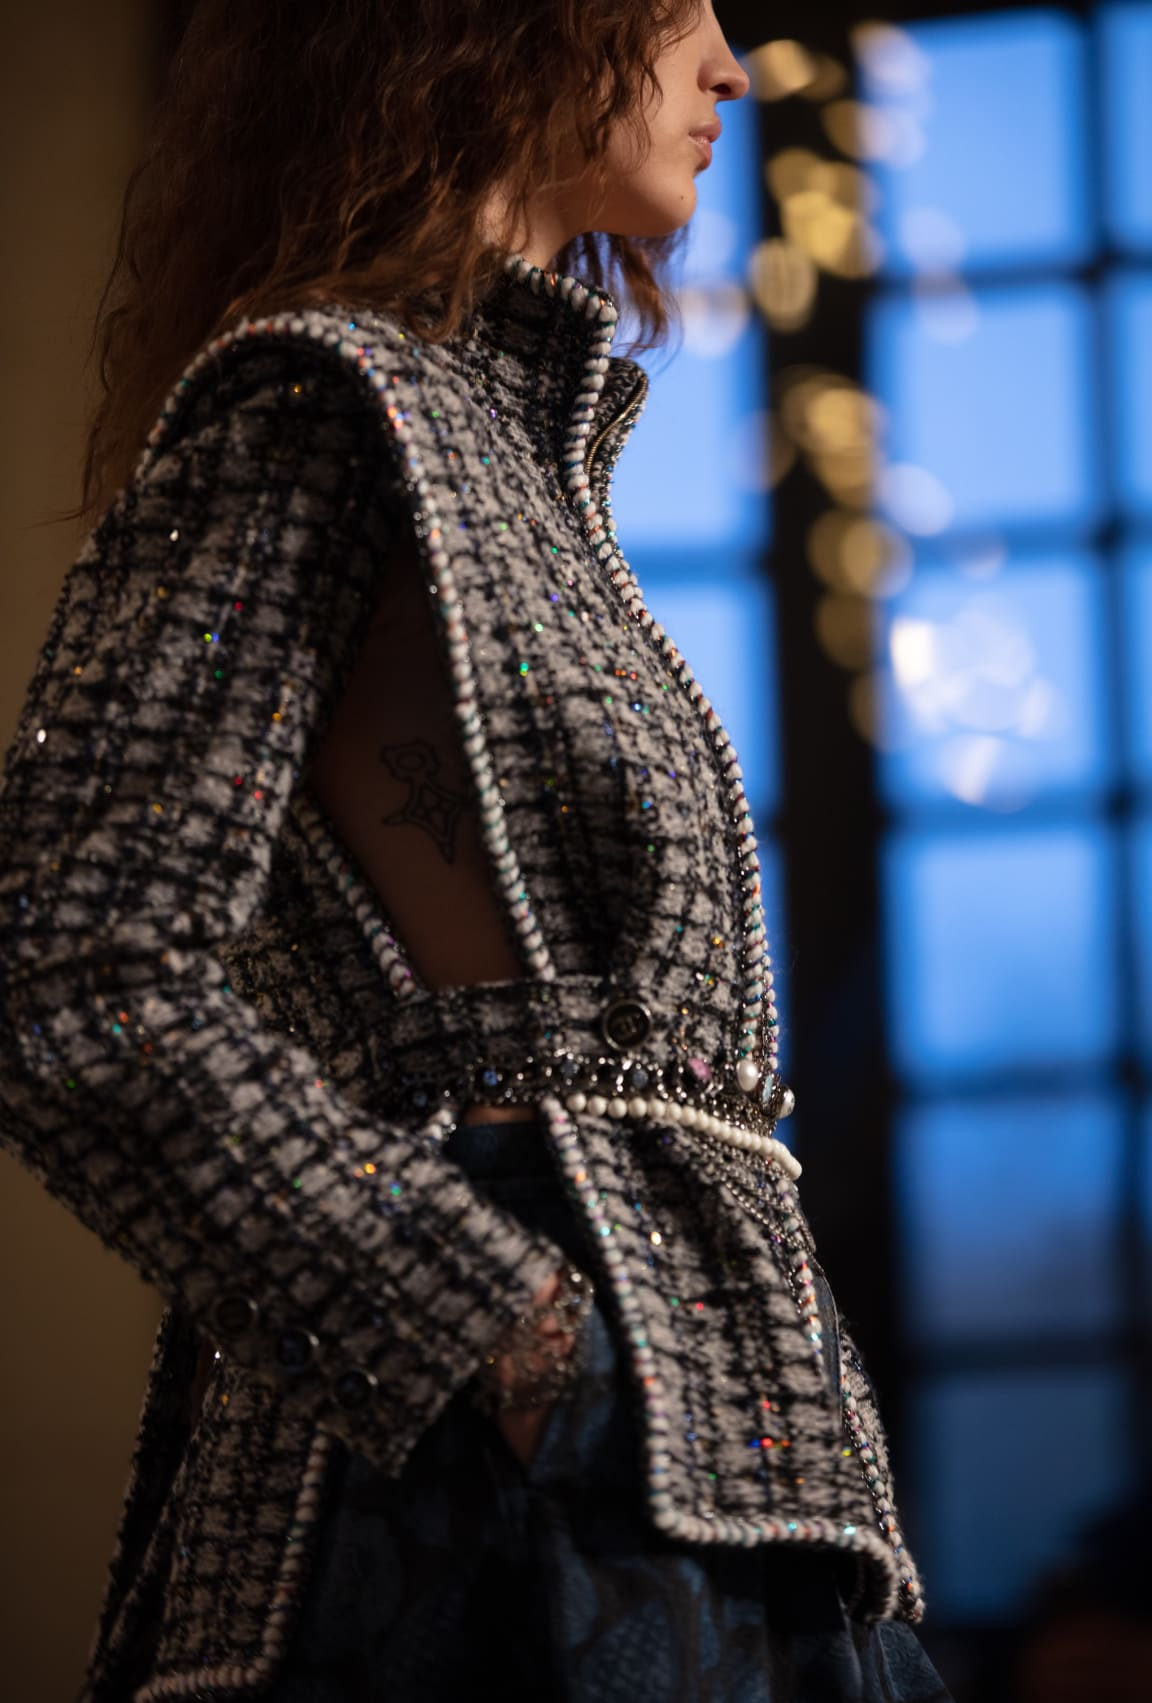 View 2 - Look 19 - Métiers d'Art 2020/21 - see full sized version